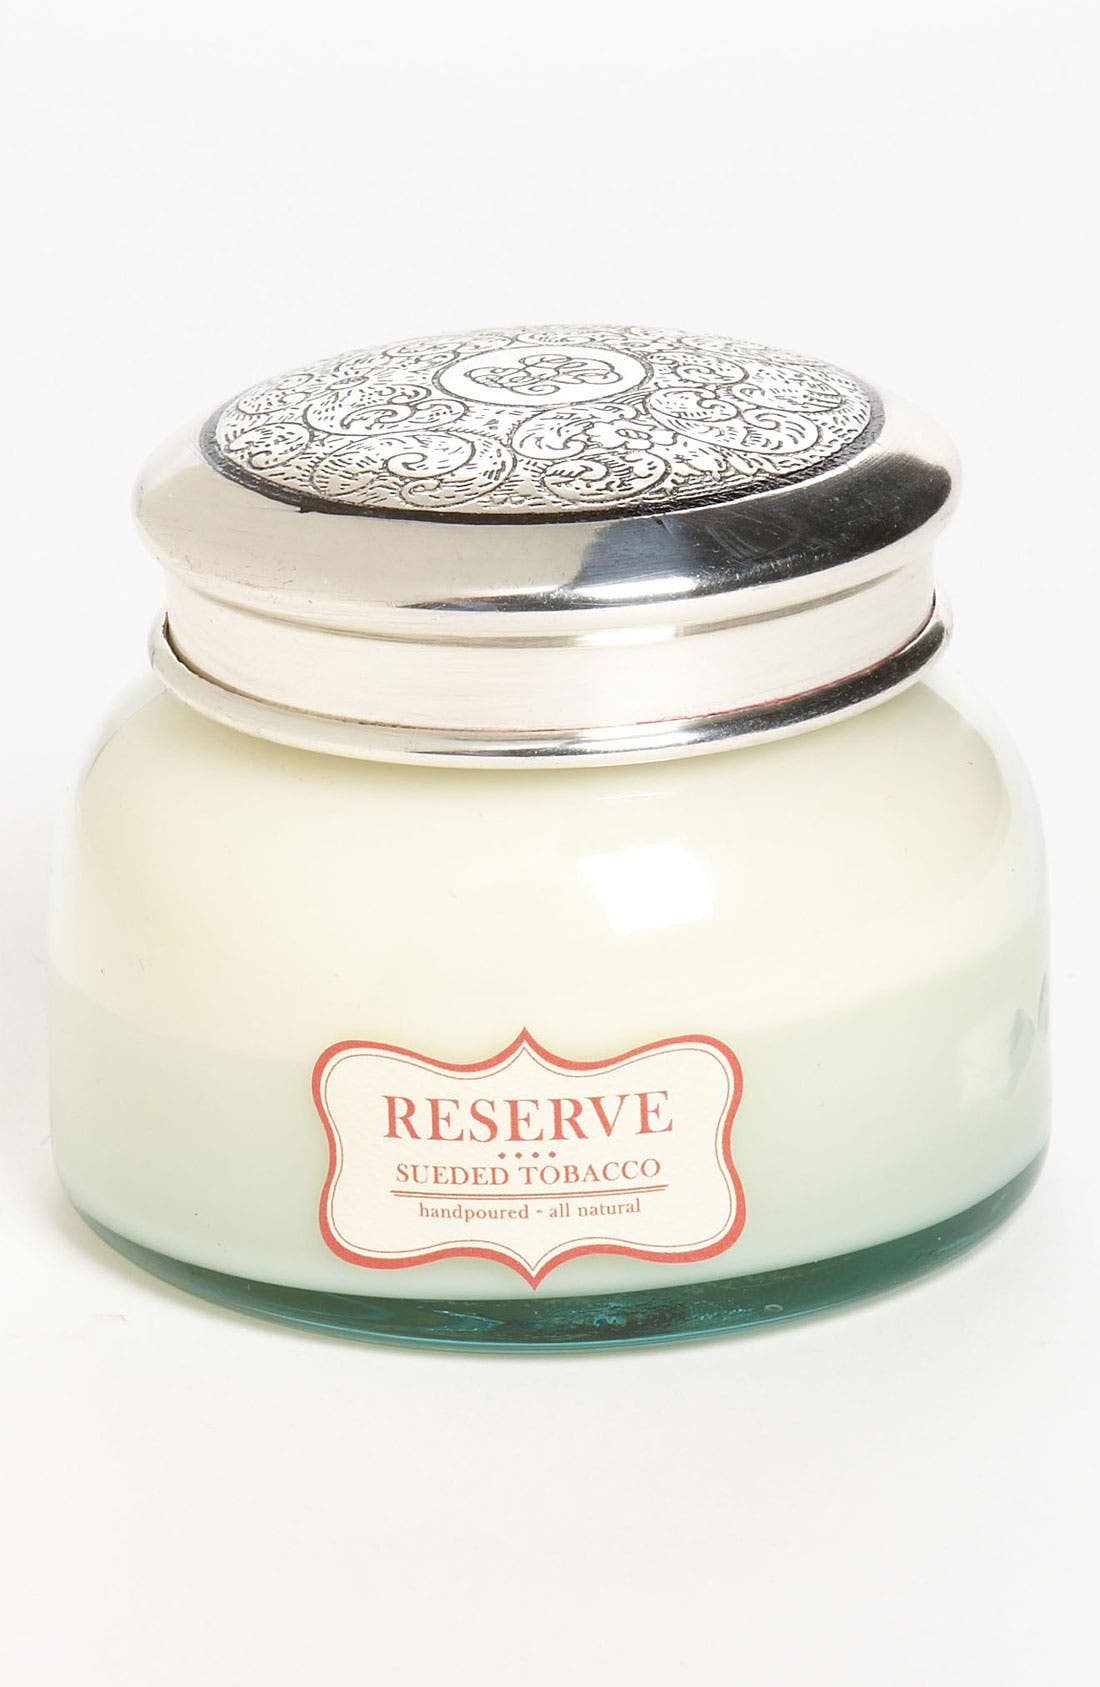 Alternate Image 1 Selected - Aspen Bay Candles 'Reserve - Sueded Tobacco' Jar Candle